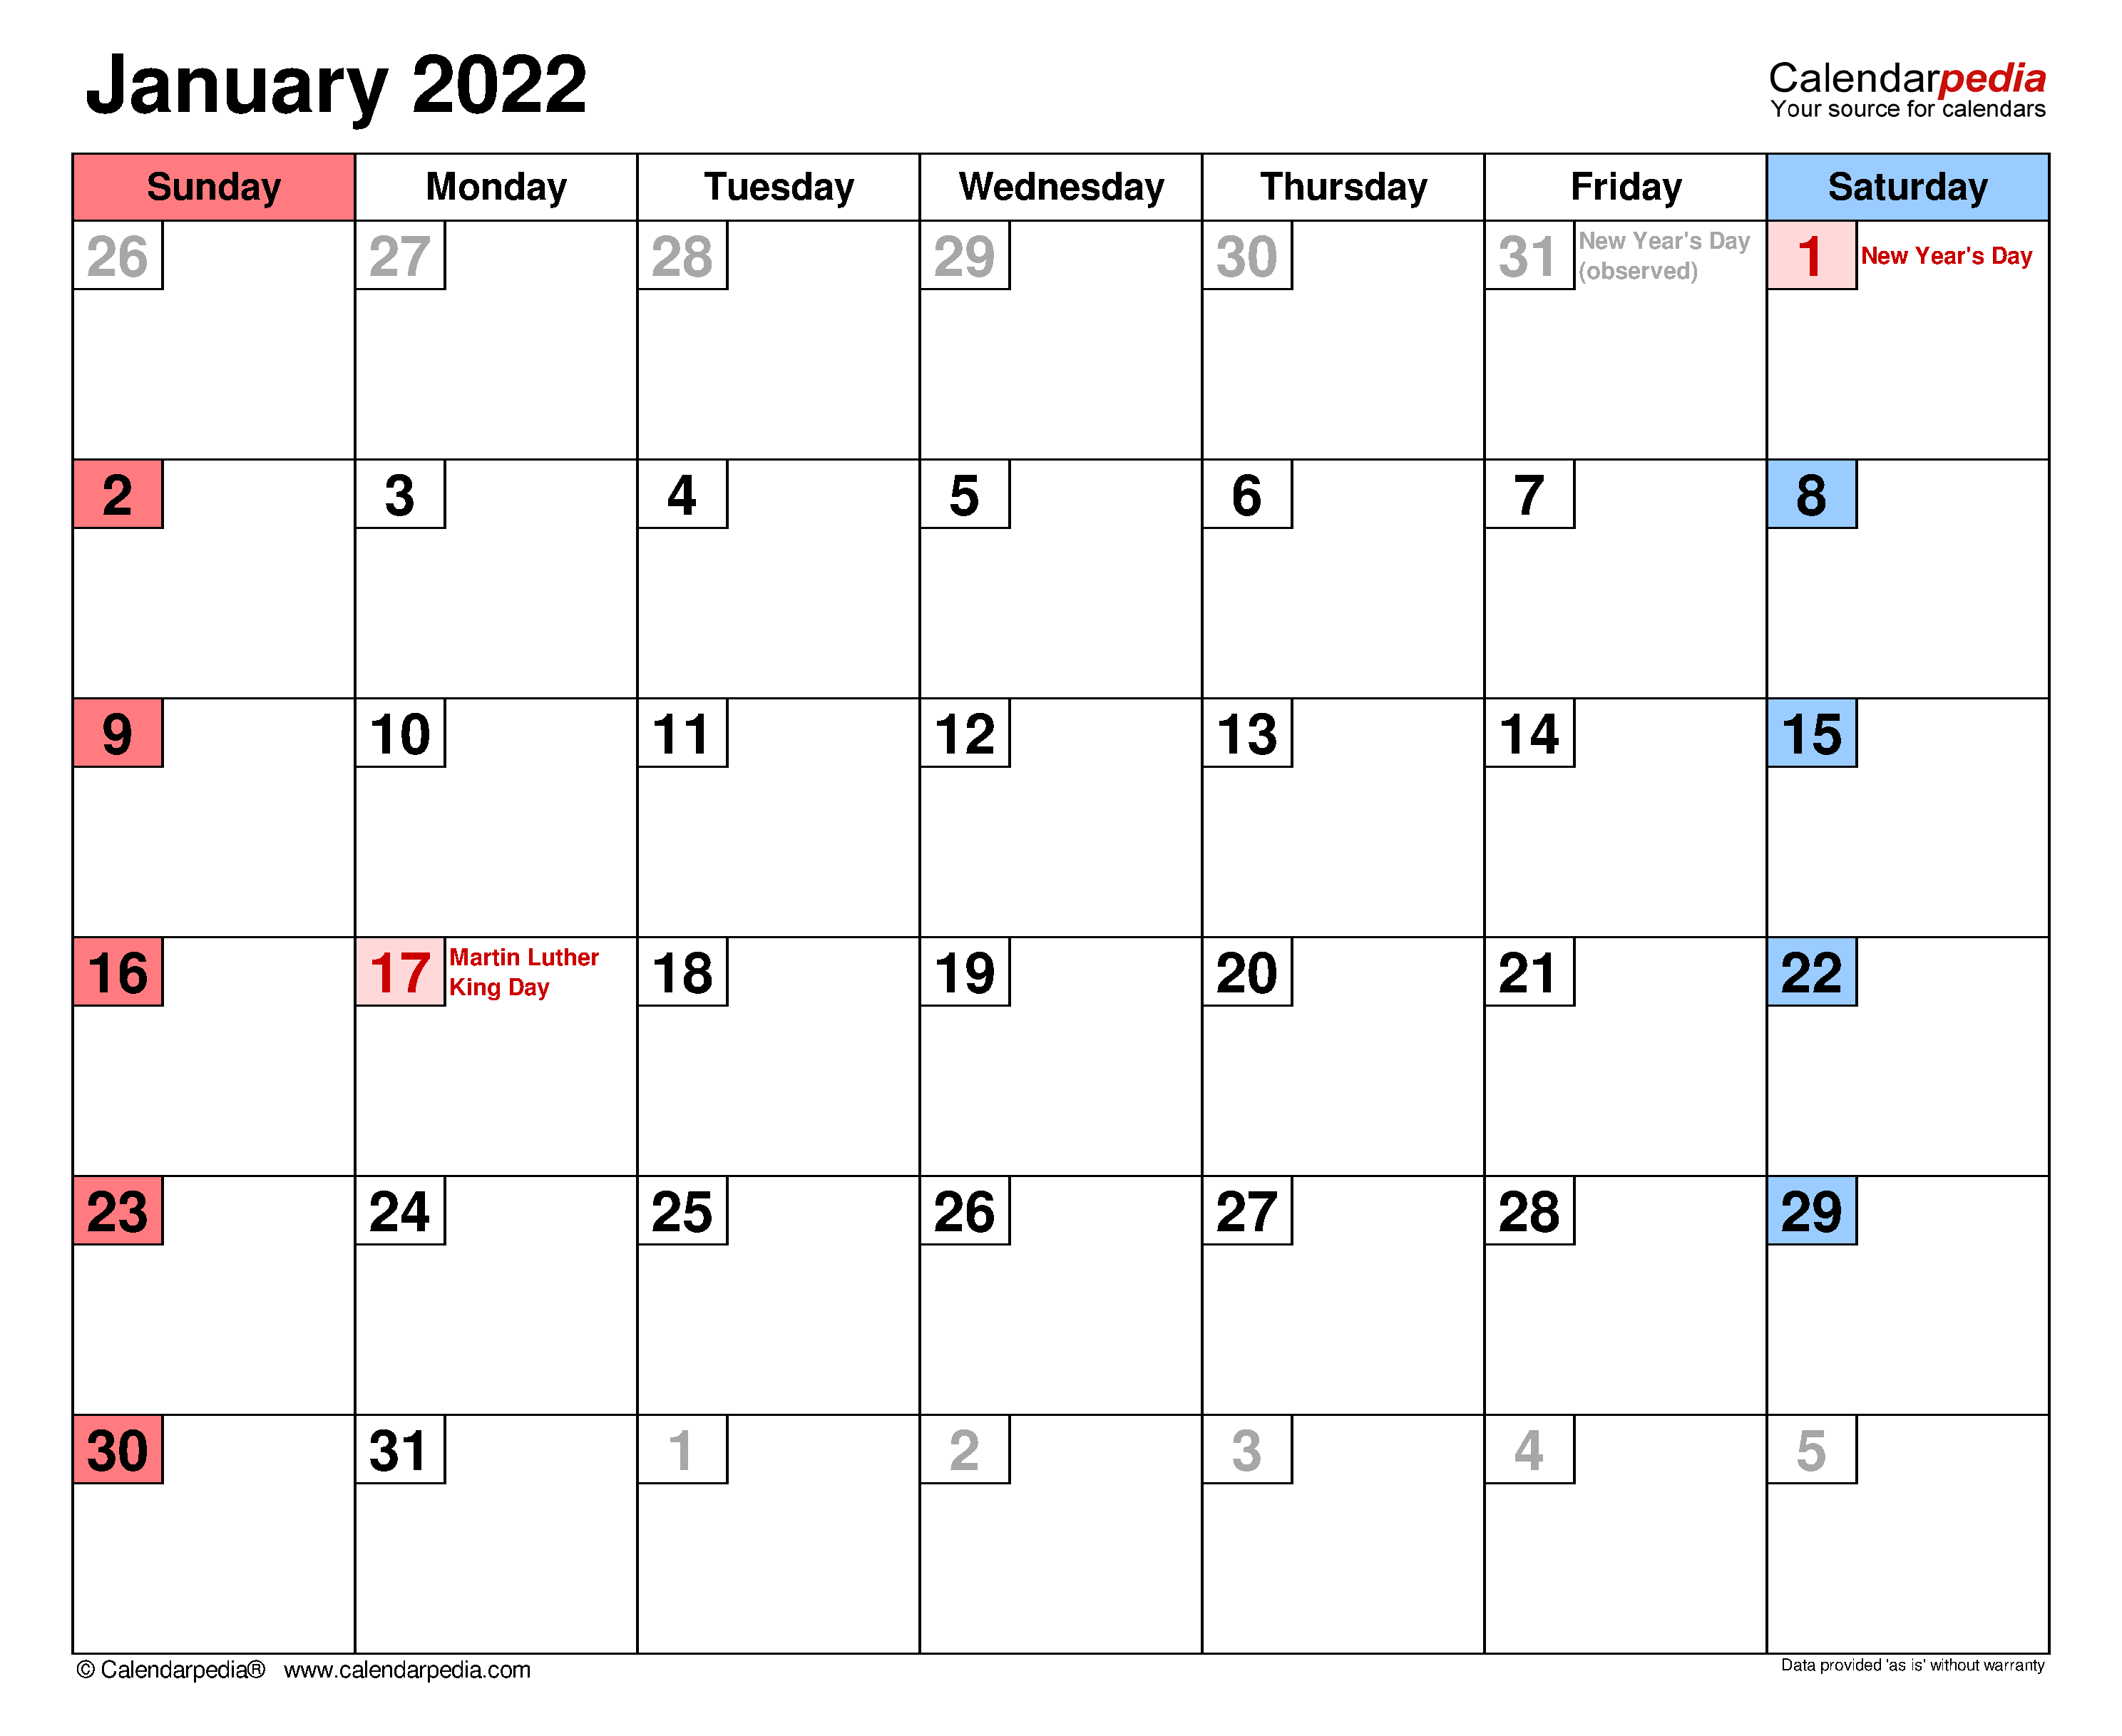 January 2022 Calendar | Templates For Word, Excel And Pdf Throughout Blank January 2022 Calendar